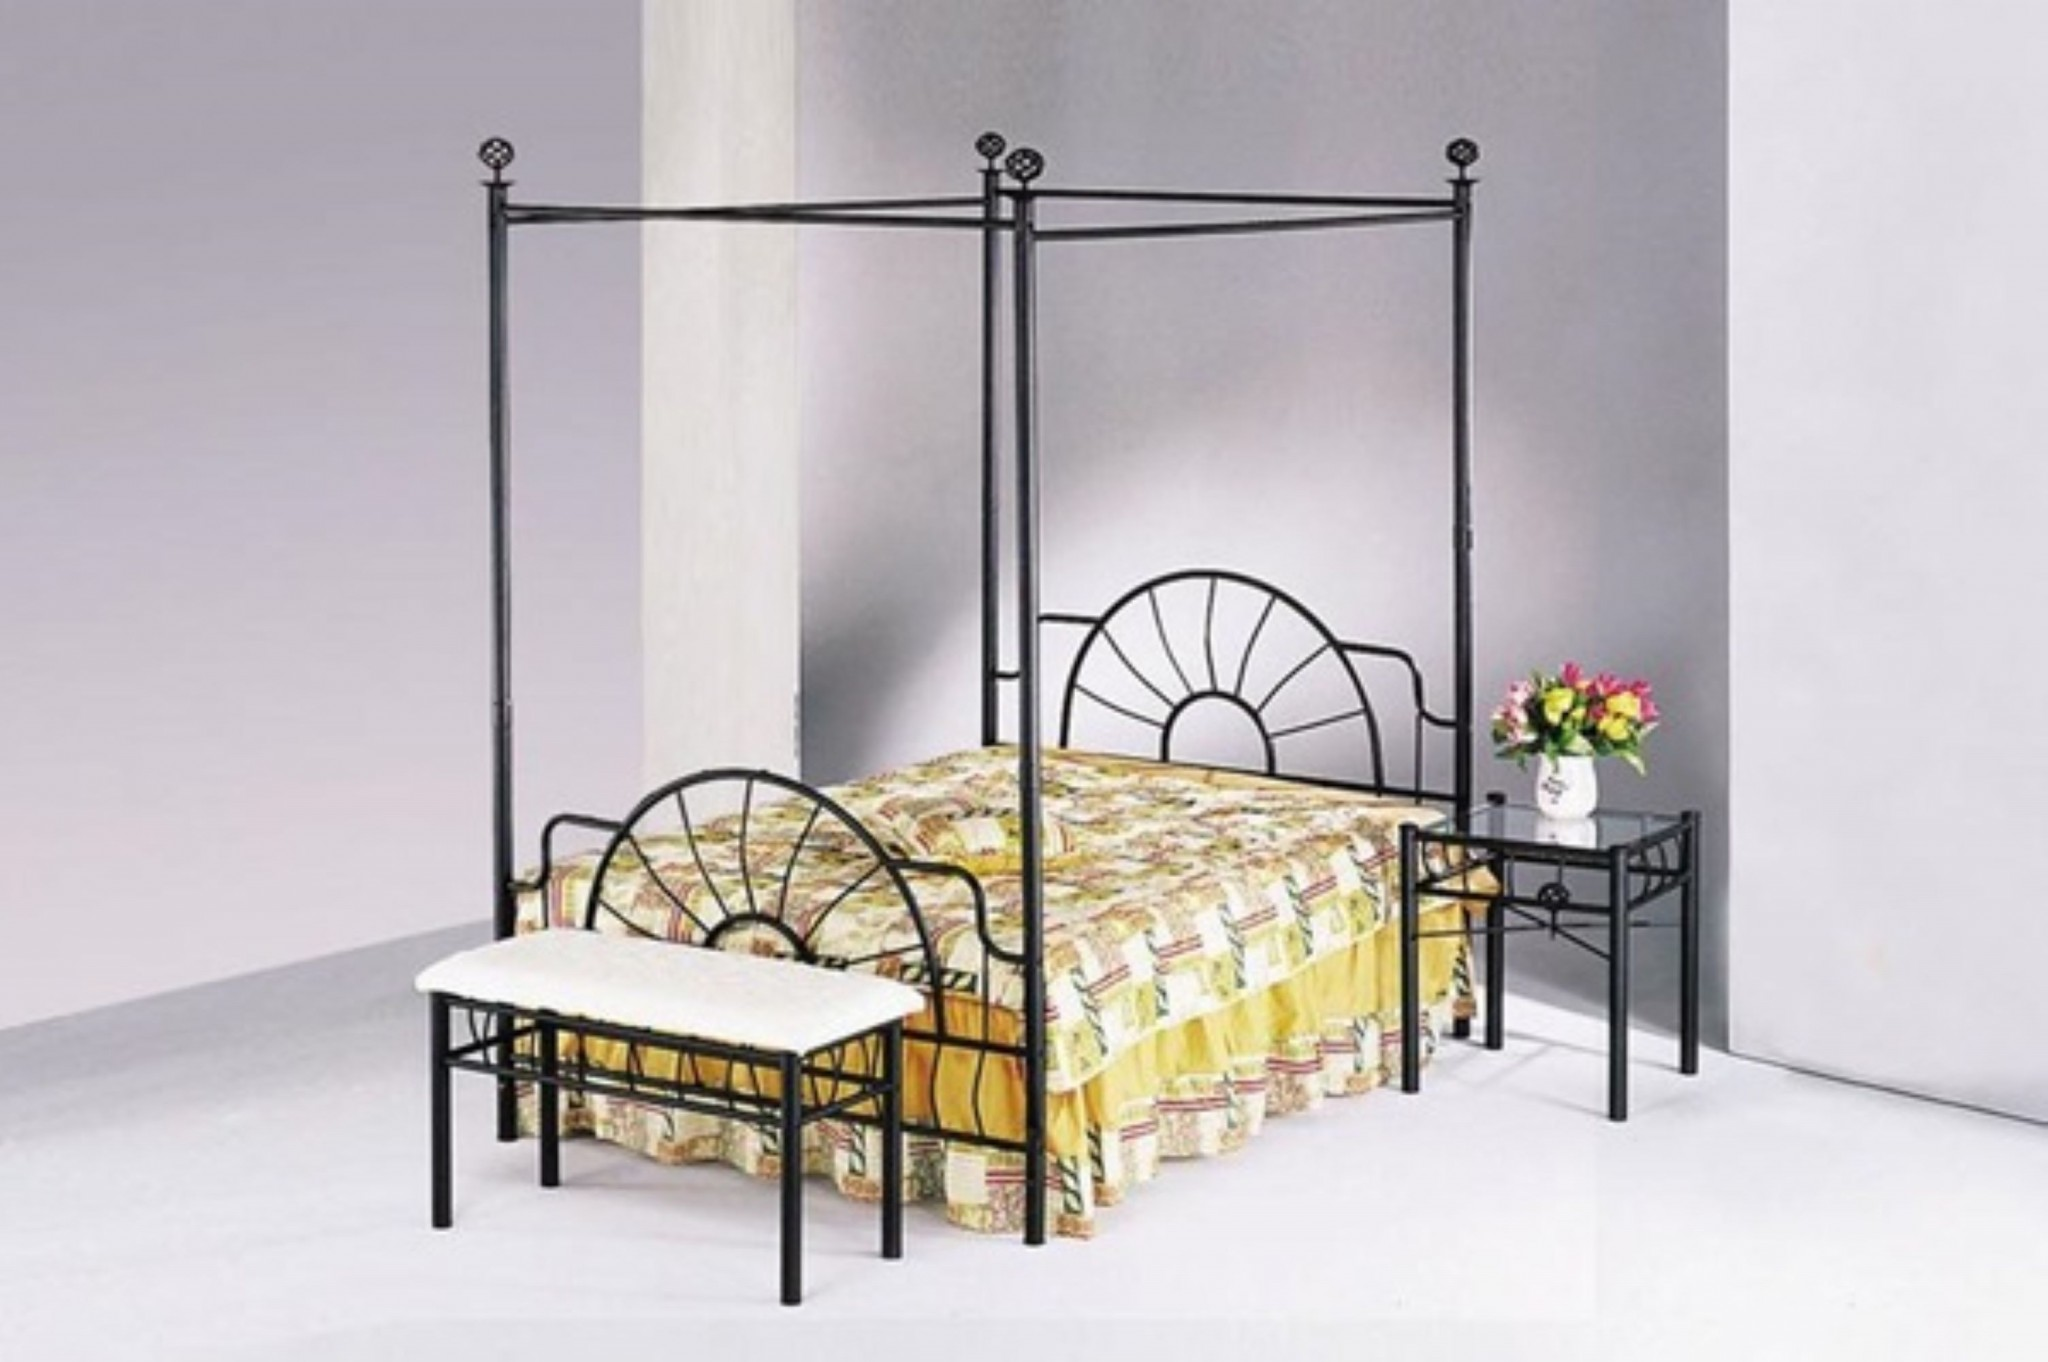 Queen Headboard And Footboard & Canopy (Rail Not Included), Sandy Black